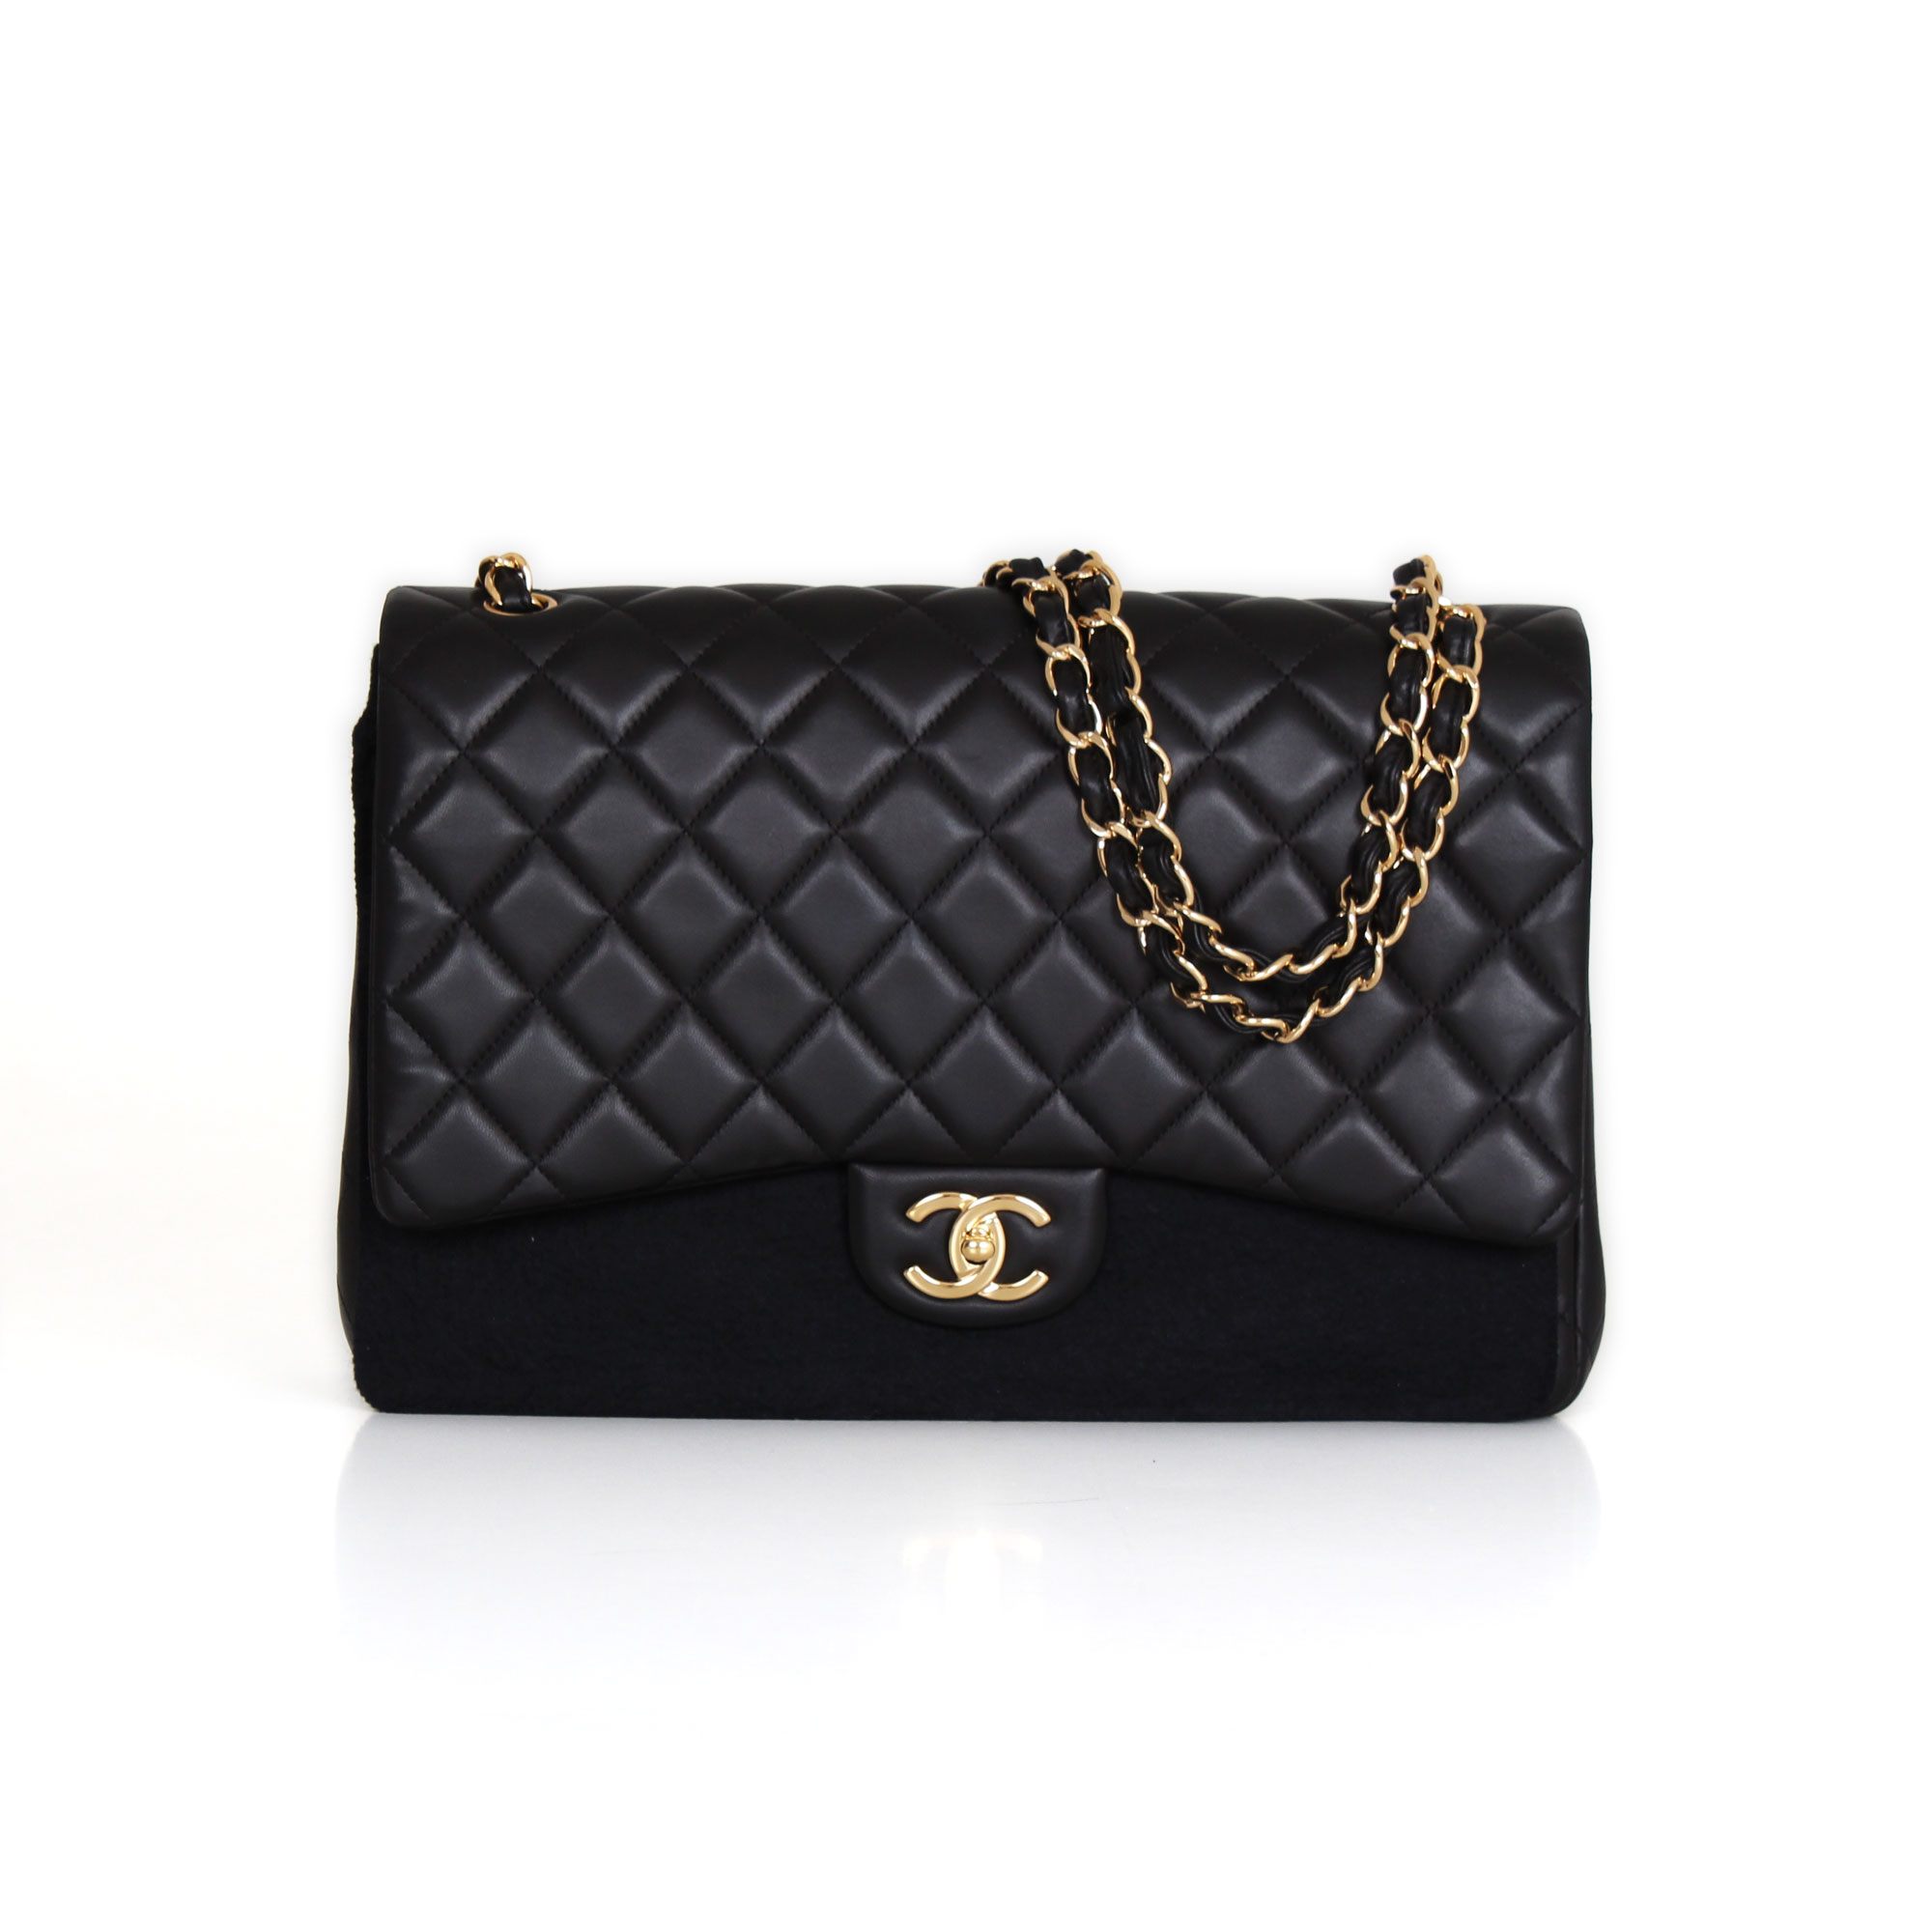 fcc589d2e02d Chanel Timeless Maxi Double Flap Black Lambskin handbag | CBL Bags